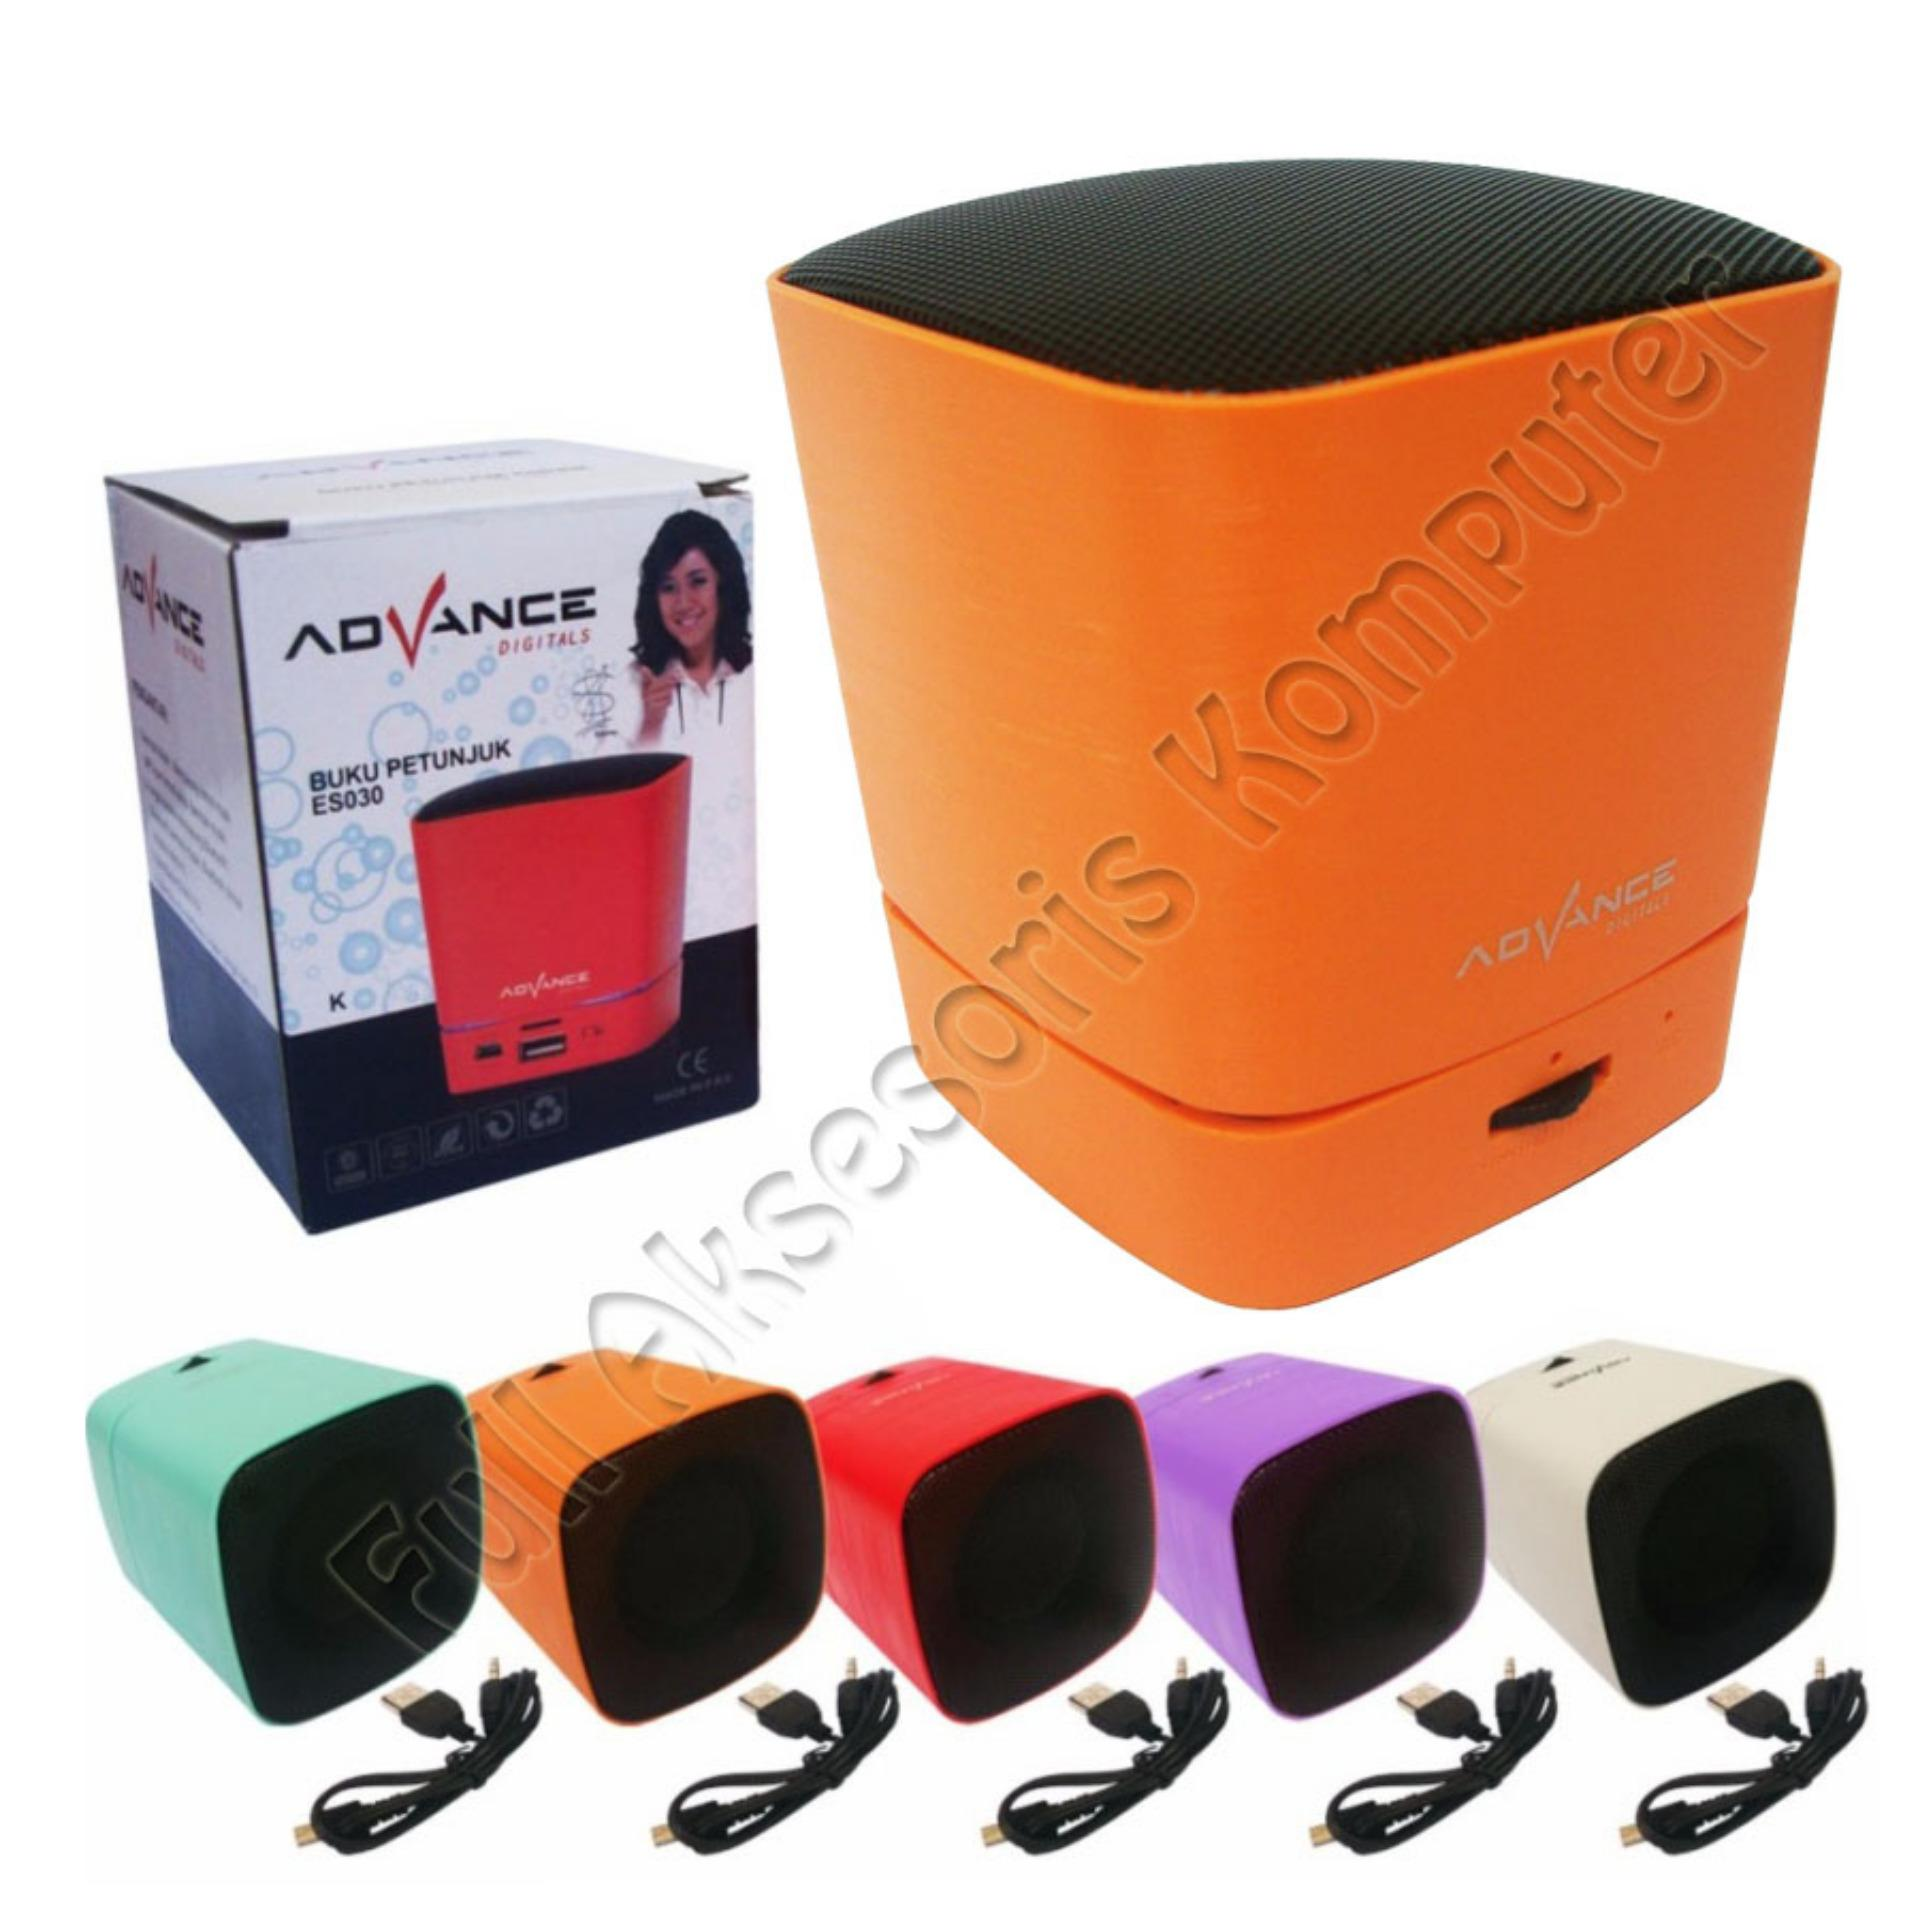 Advance Mini Speaker Portable Bluetooth ES030K - Orange